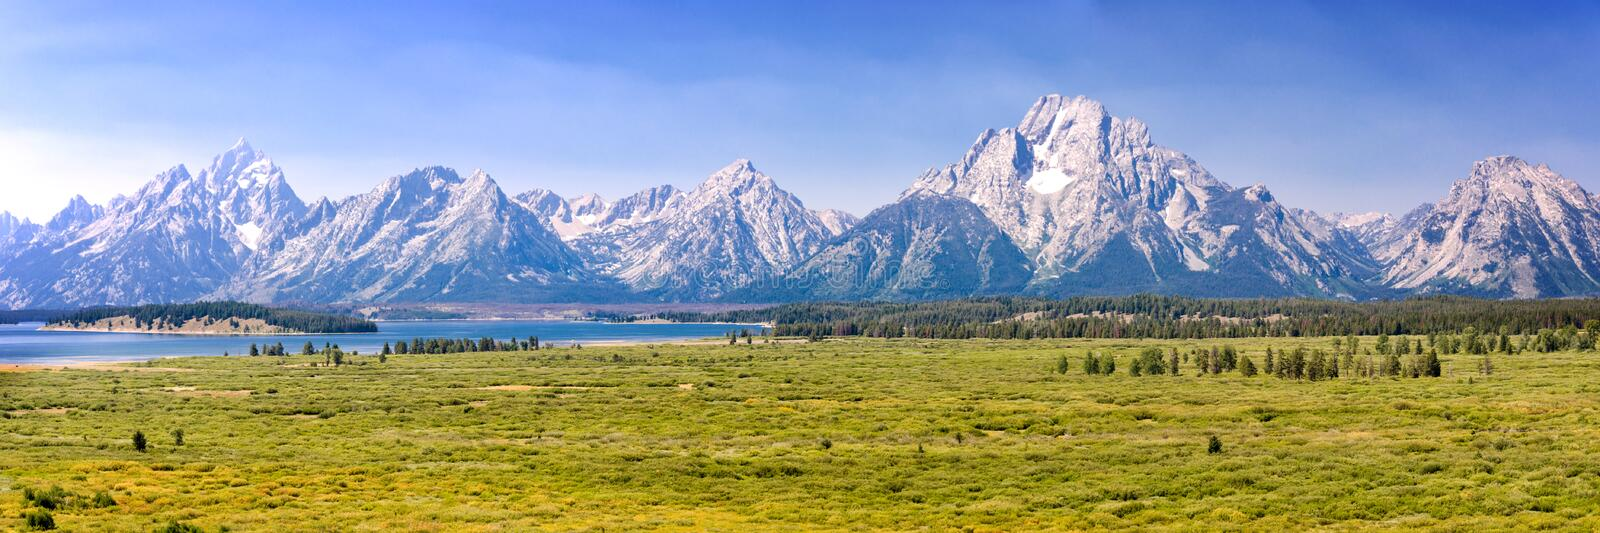 Parc national grand de Teton, panorama de gamme de montagne, Wyoming Etats-Unis images libres de droits